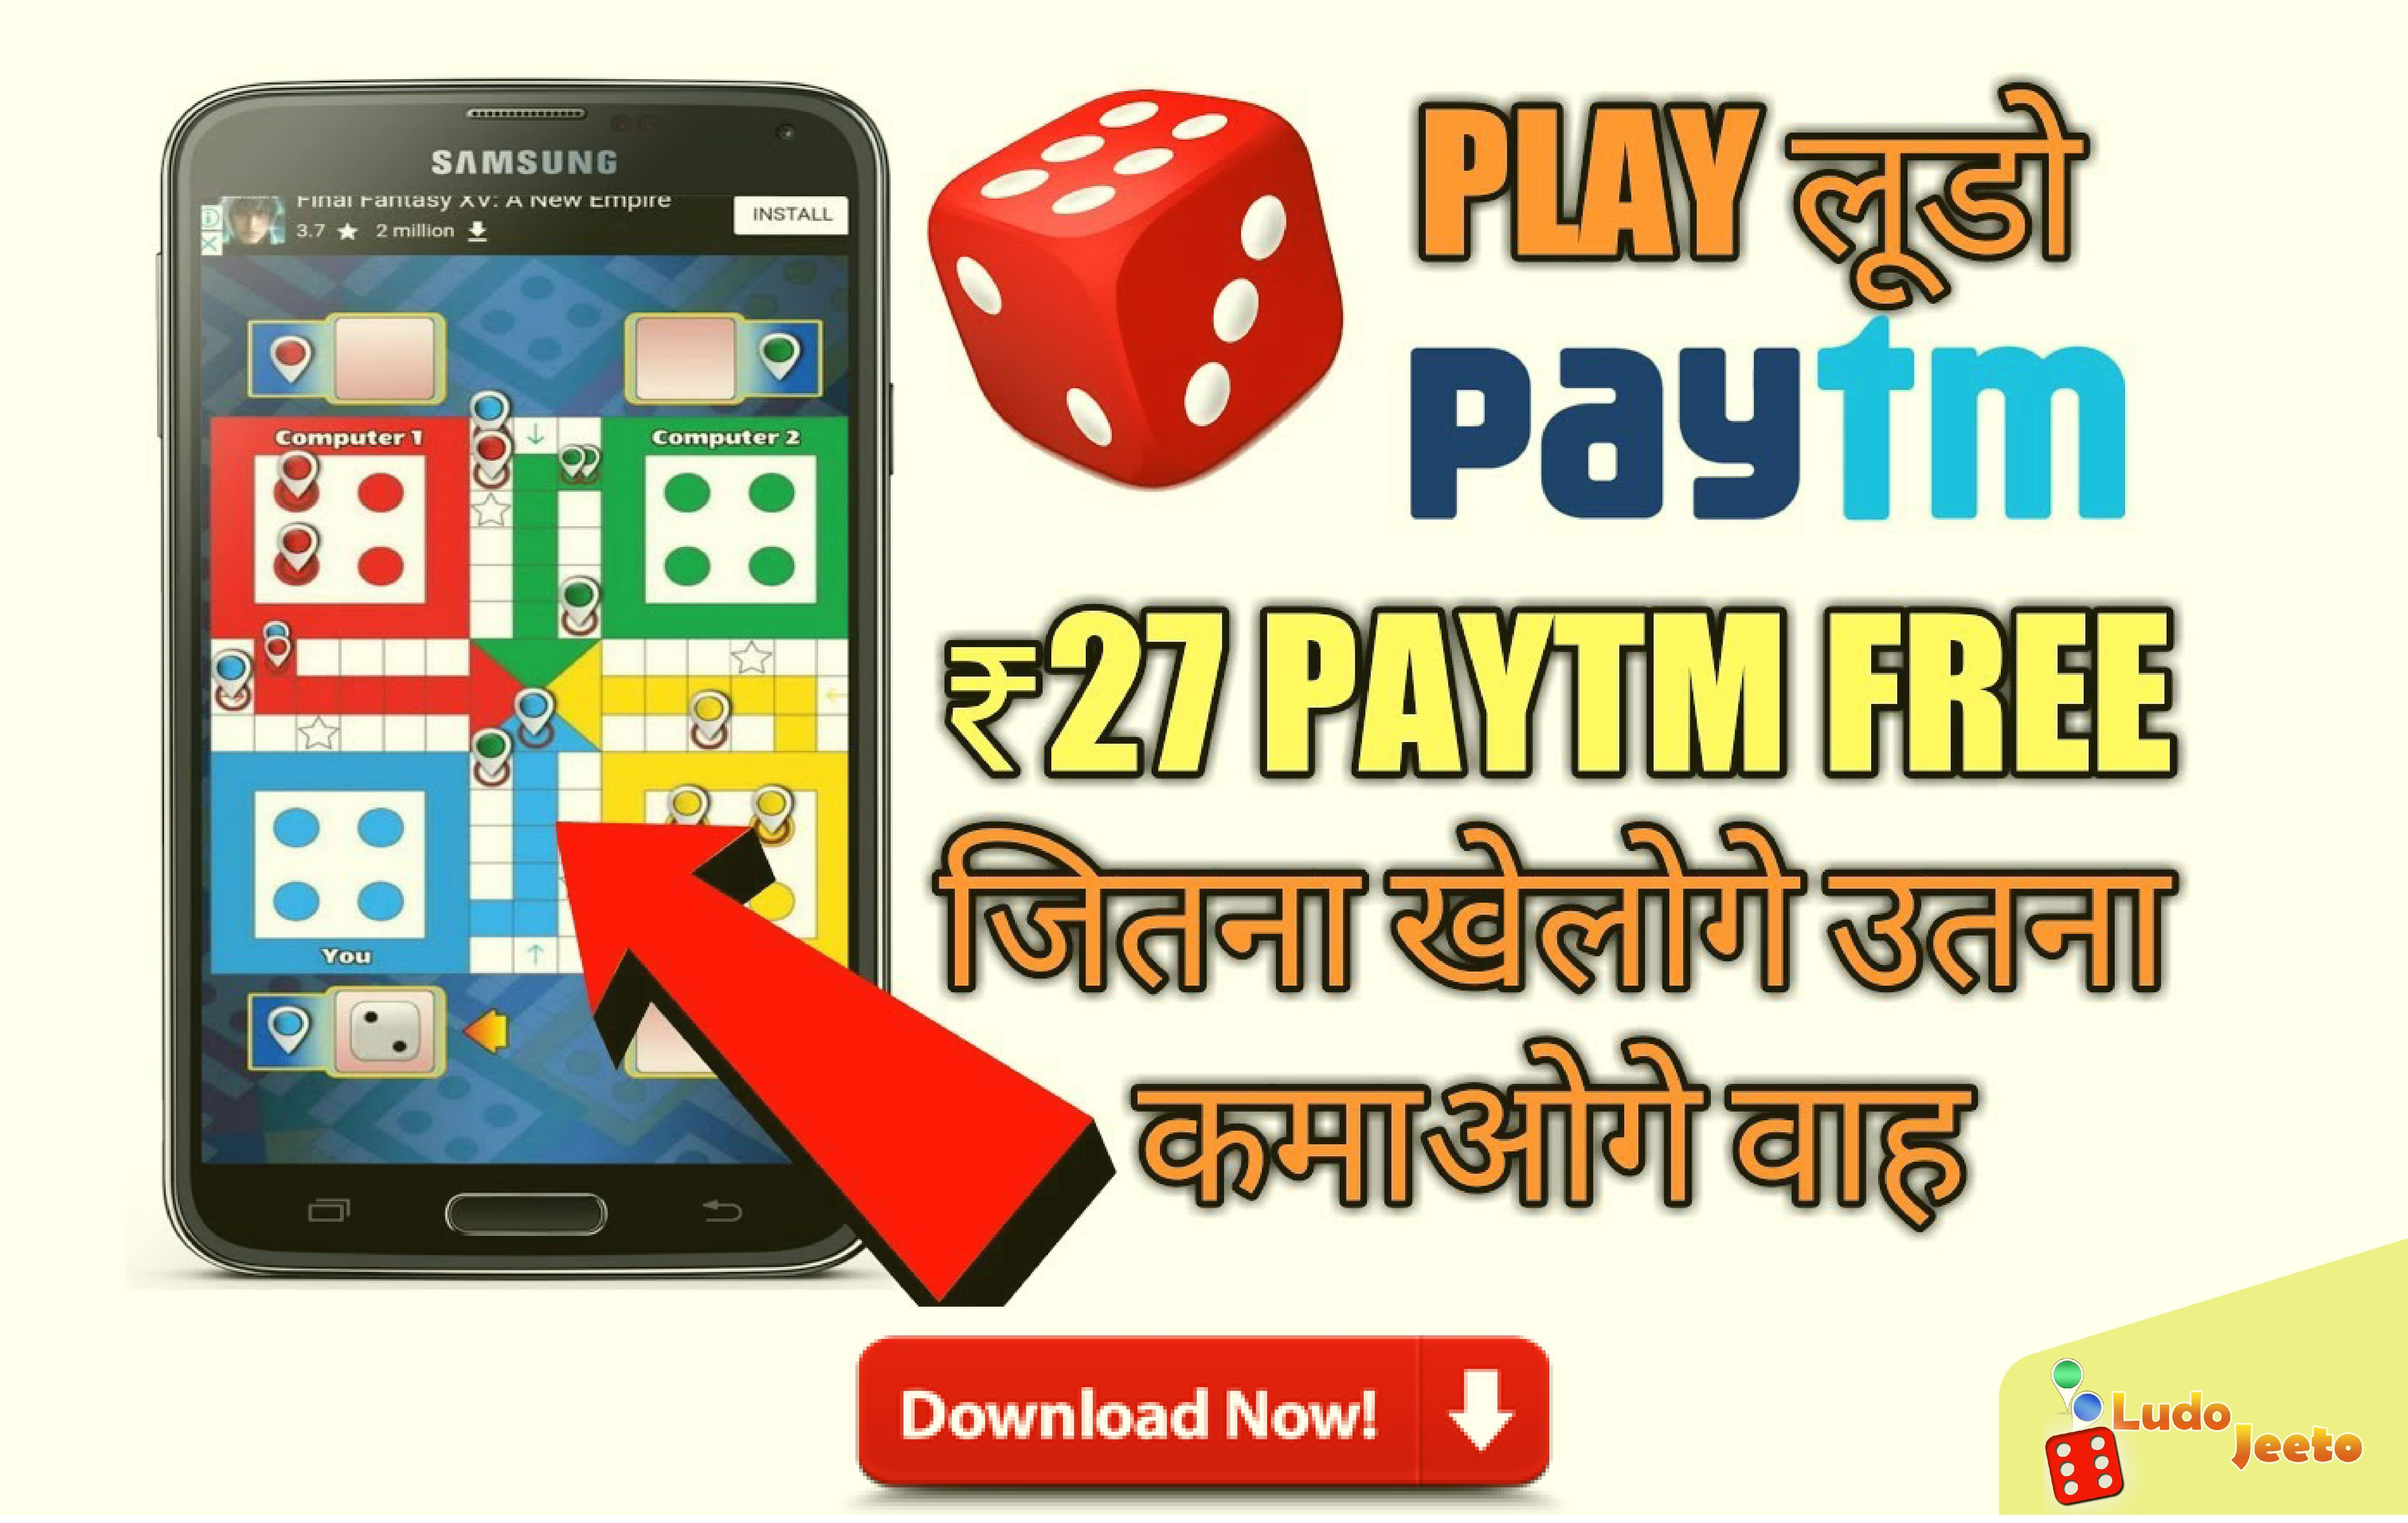 Ludo Jeeto, A leading online android game with real money